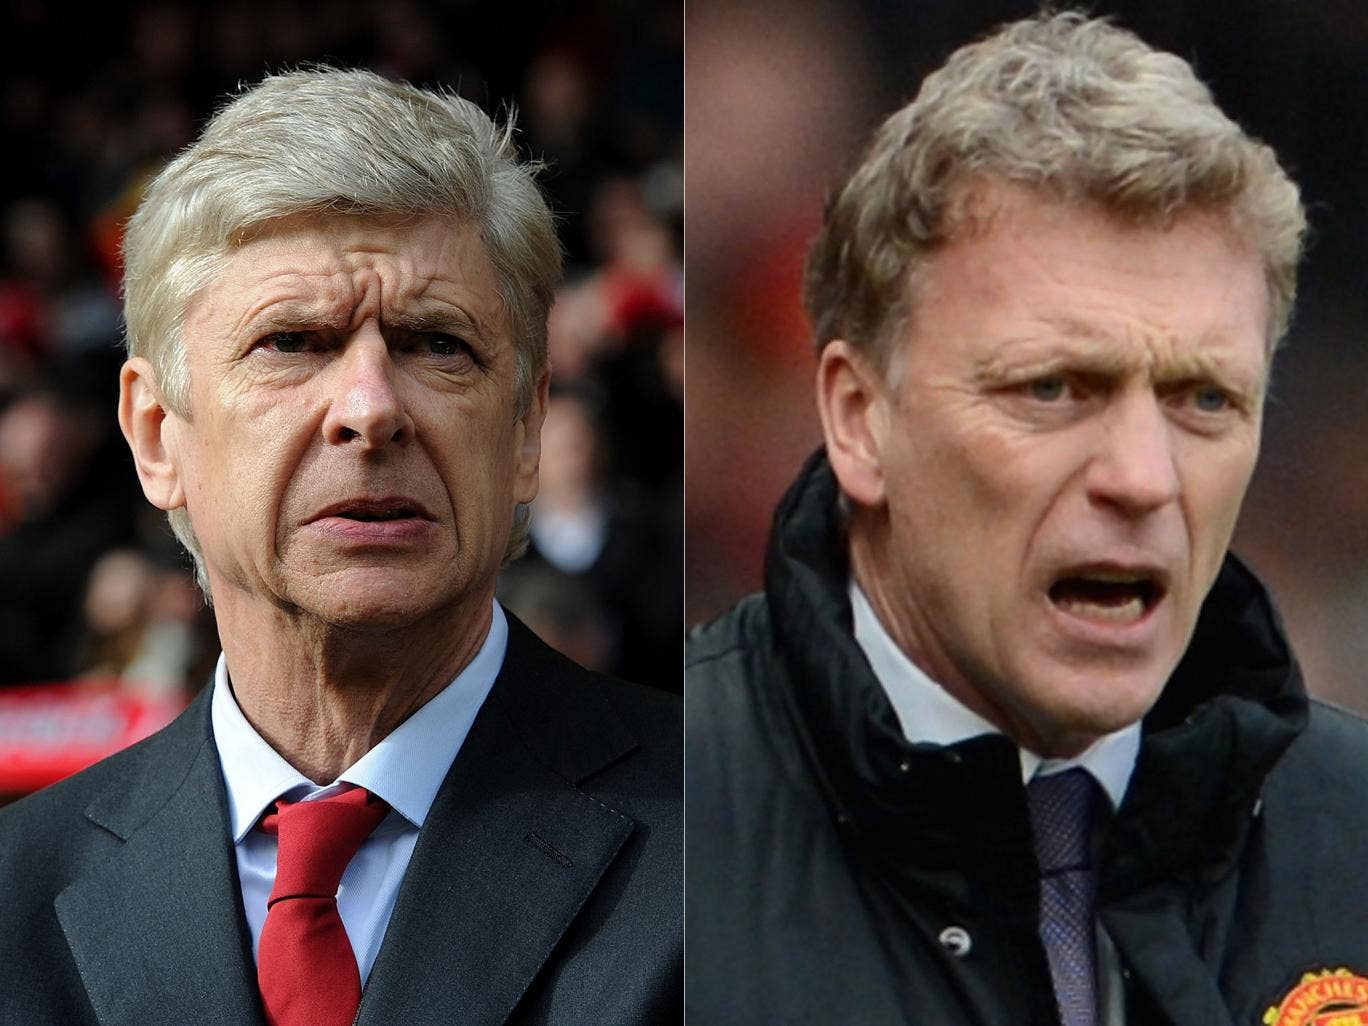 Arsene Wenger and David Moyes had little to cheer at the weekend but one could be a lot happier after Wednesday's match